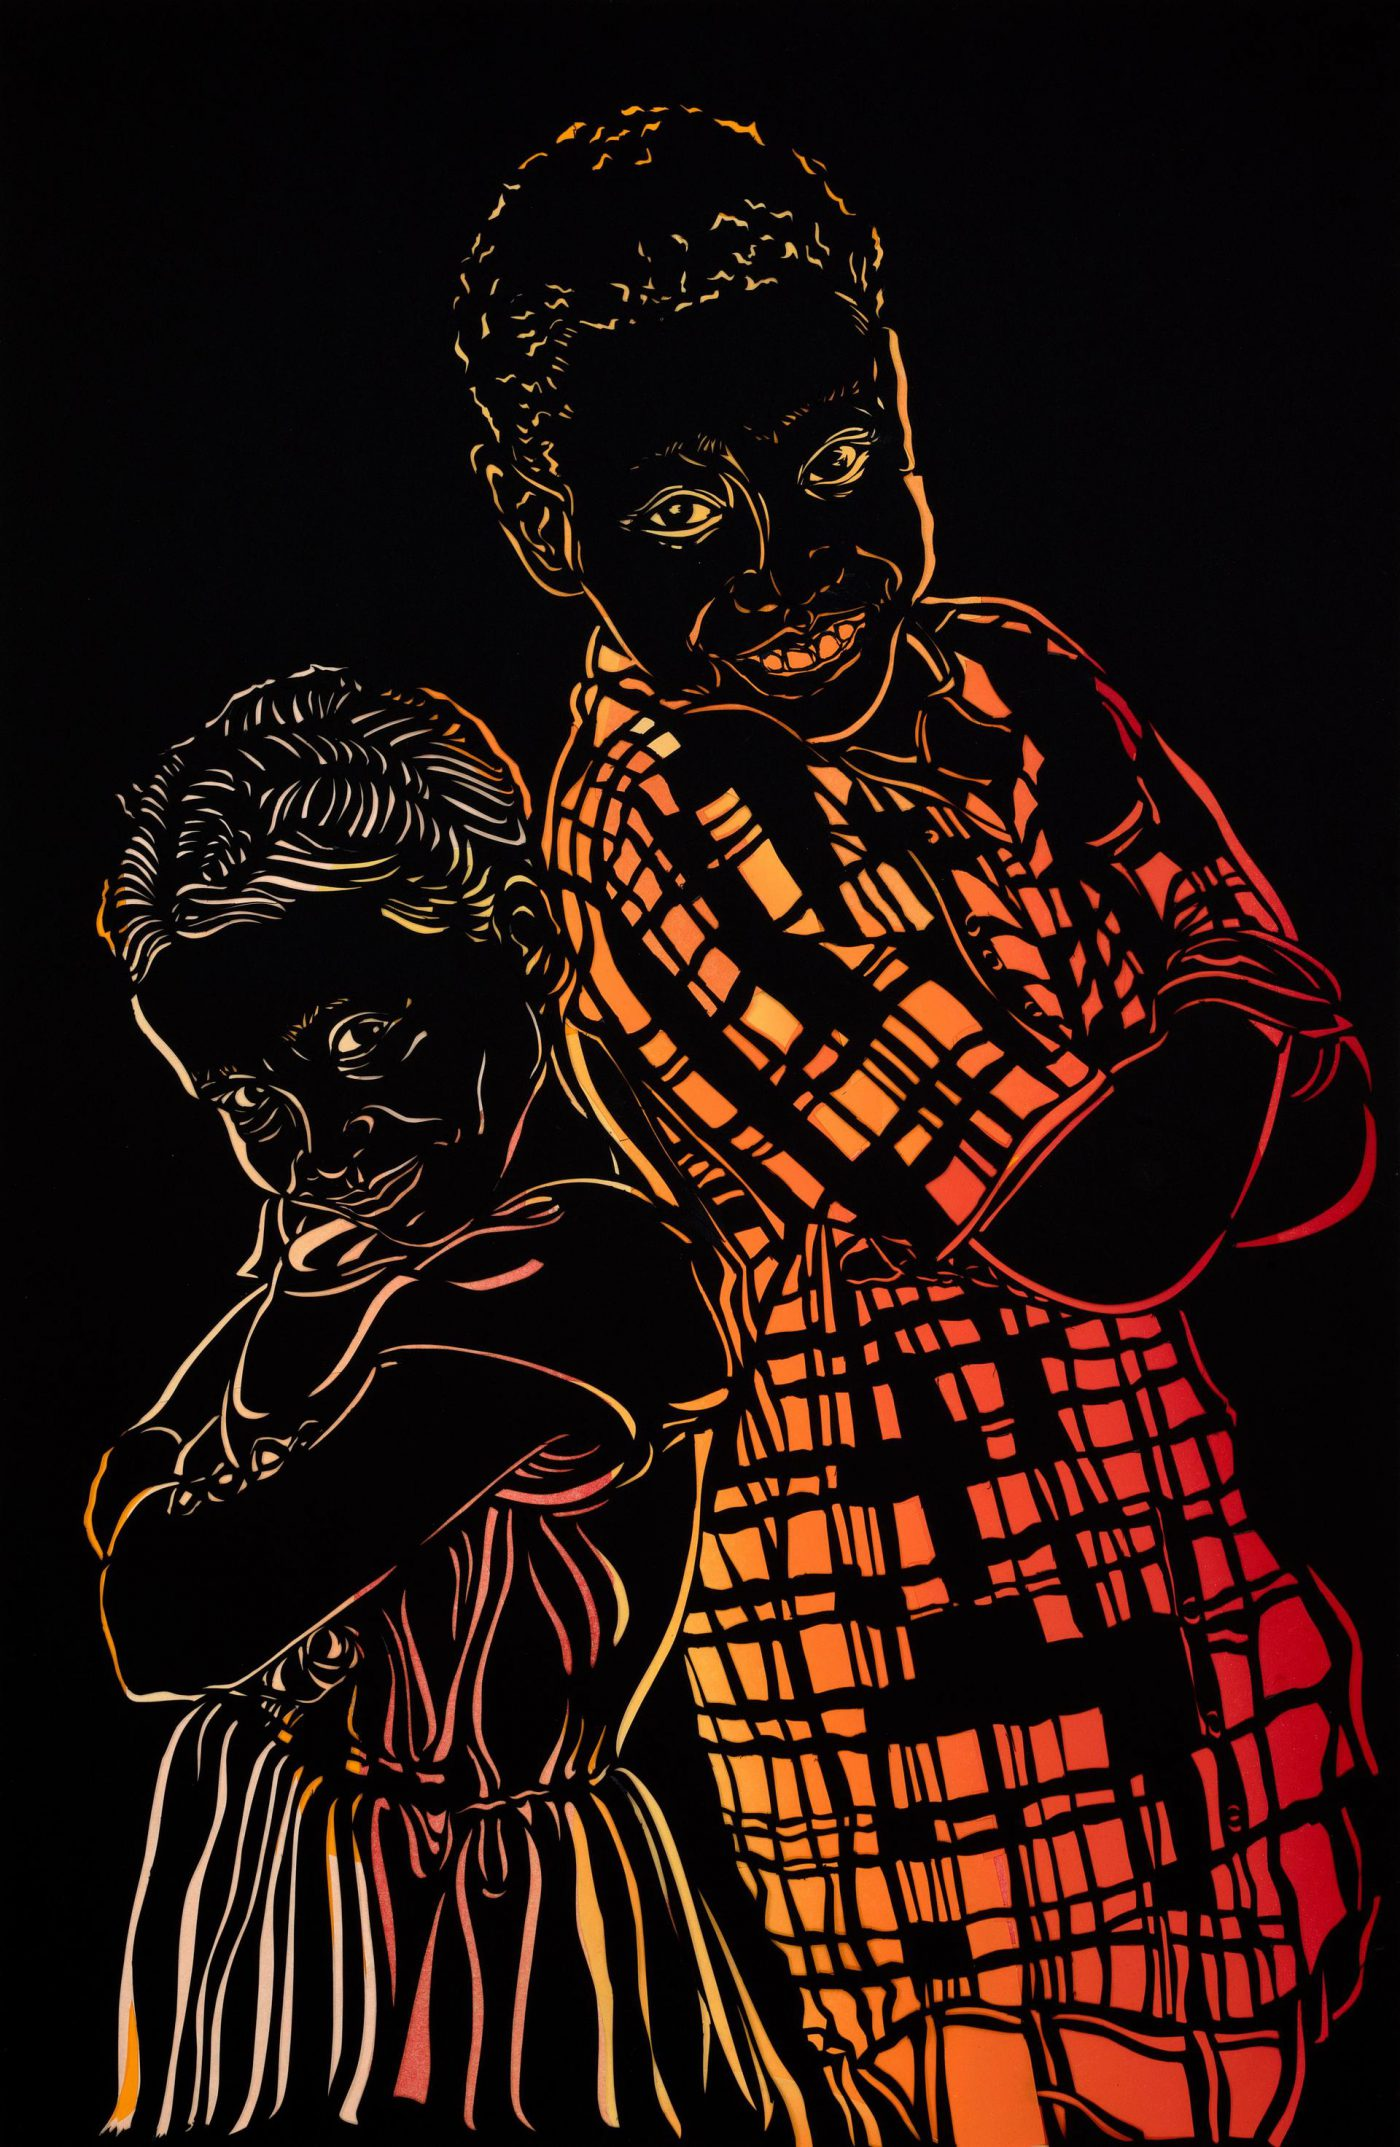 Image of artwork featuring two young children smiling back to back rendered in a gradient of yellow, orange, and red, on a black background